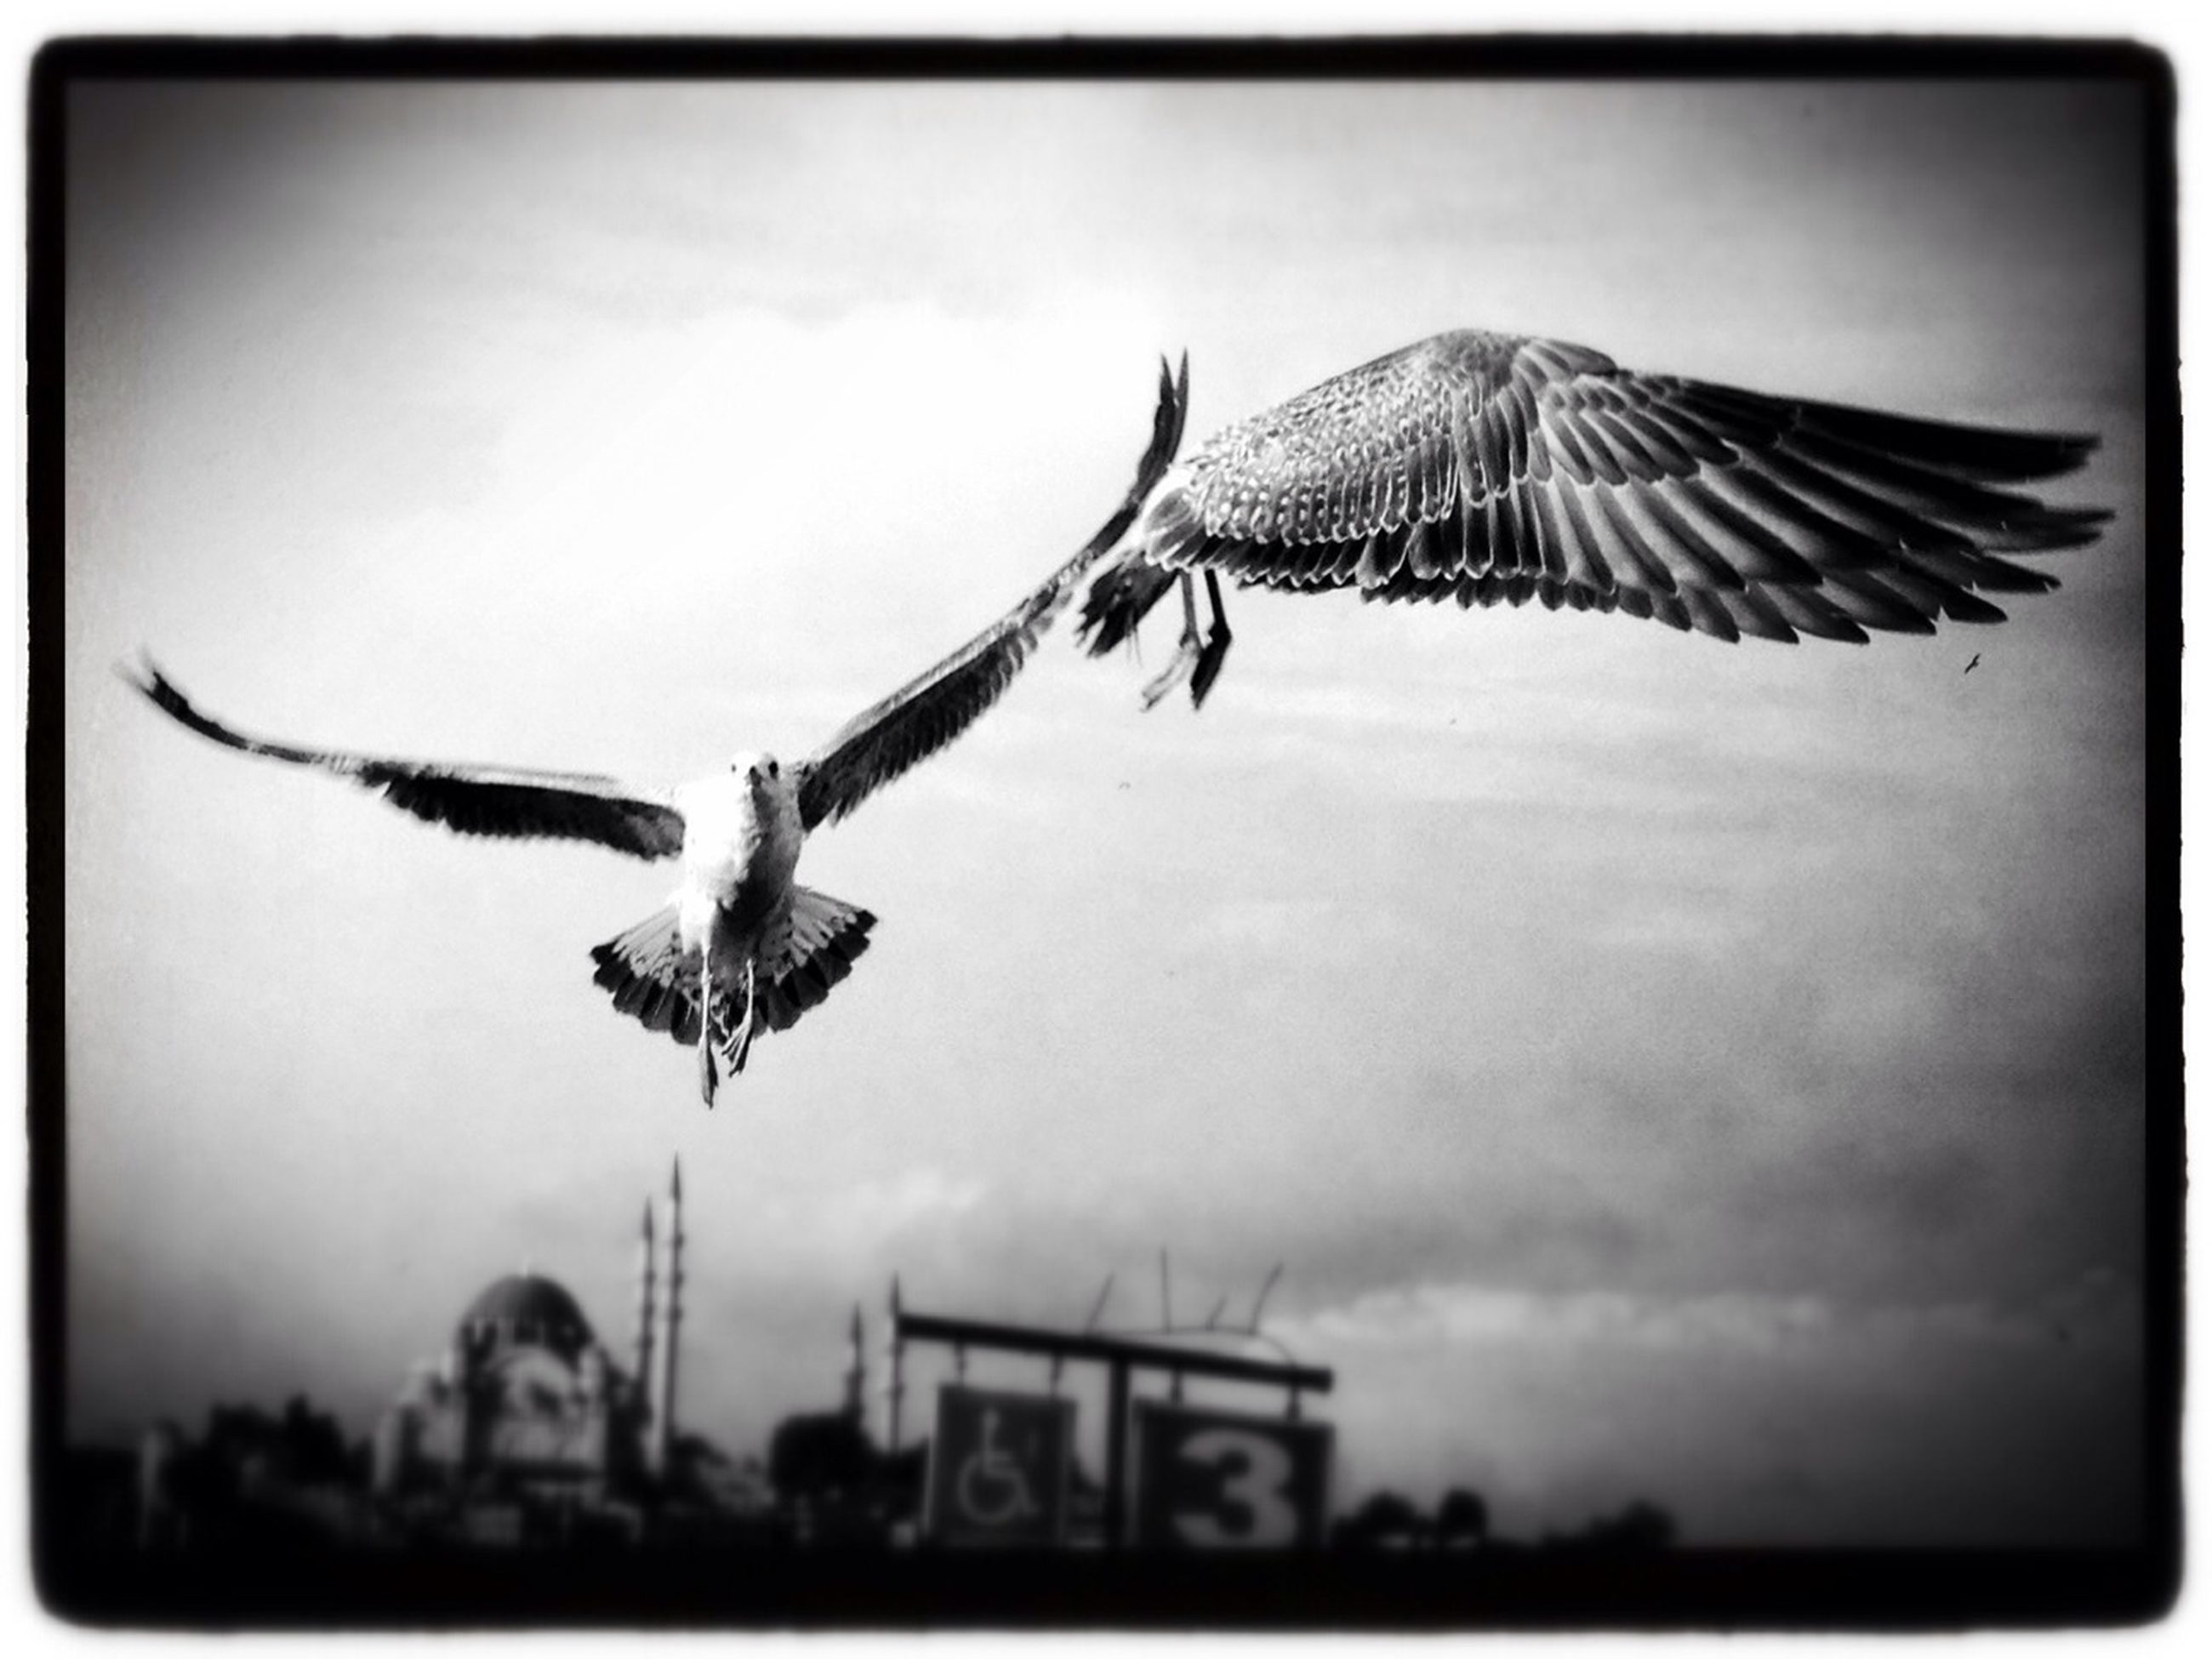 transfer print, animal themes, flying, bird, animals in the wild, spread wings, wildlife, auto post production filter, one animal, sky, low angle view, mid-air, seagull, motion, animal wing, day, full length, nature, cloud - sky, outdoors